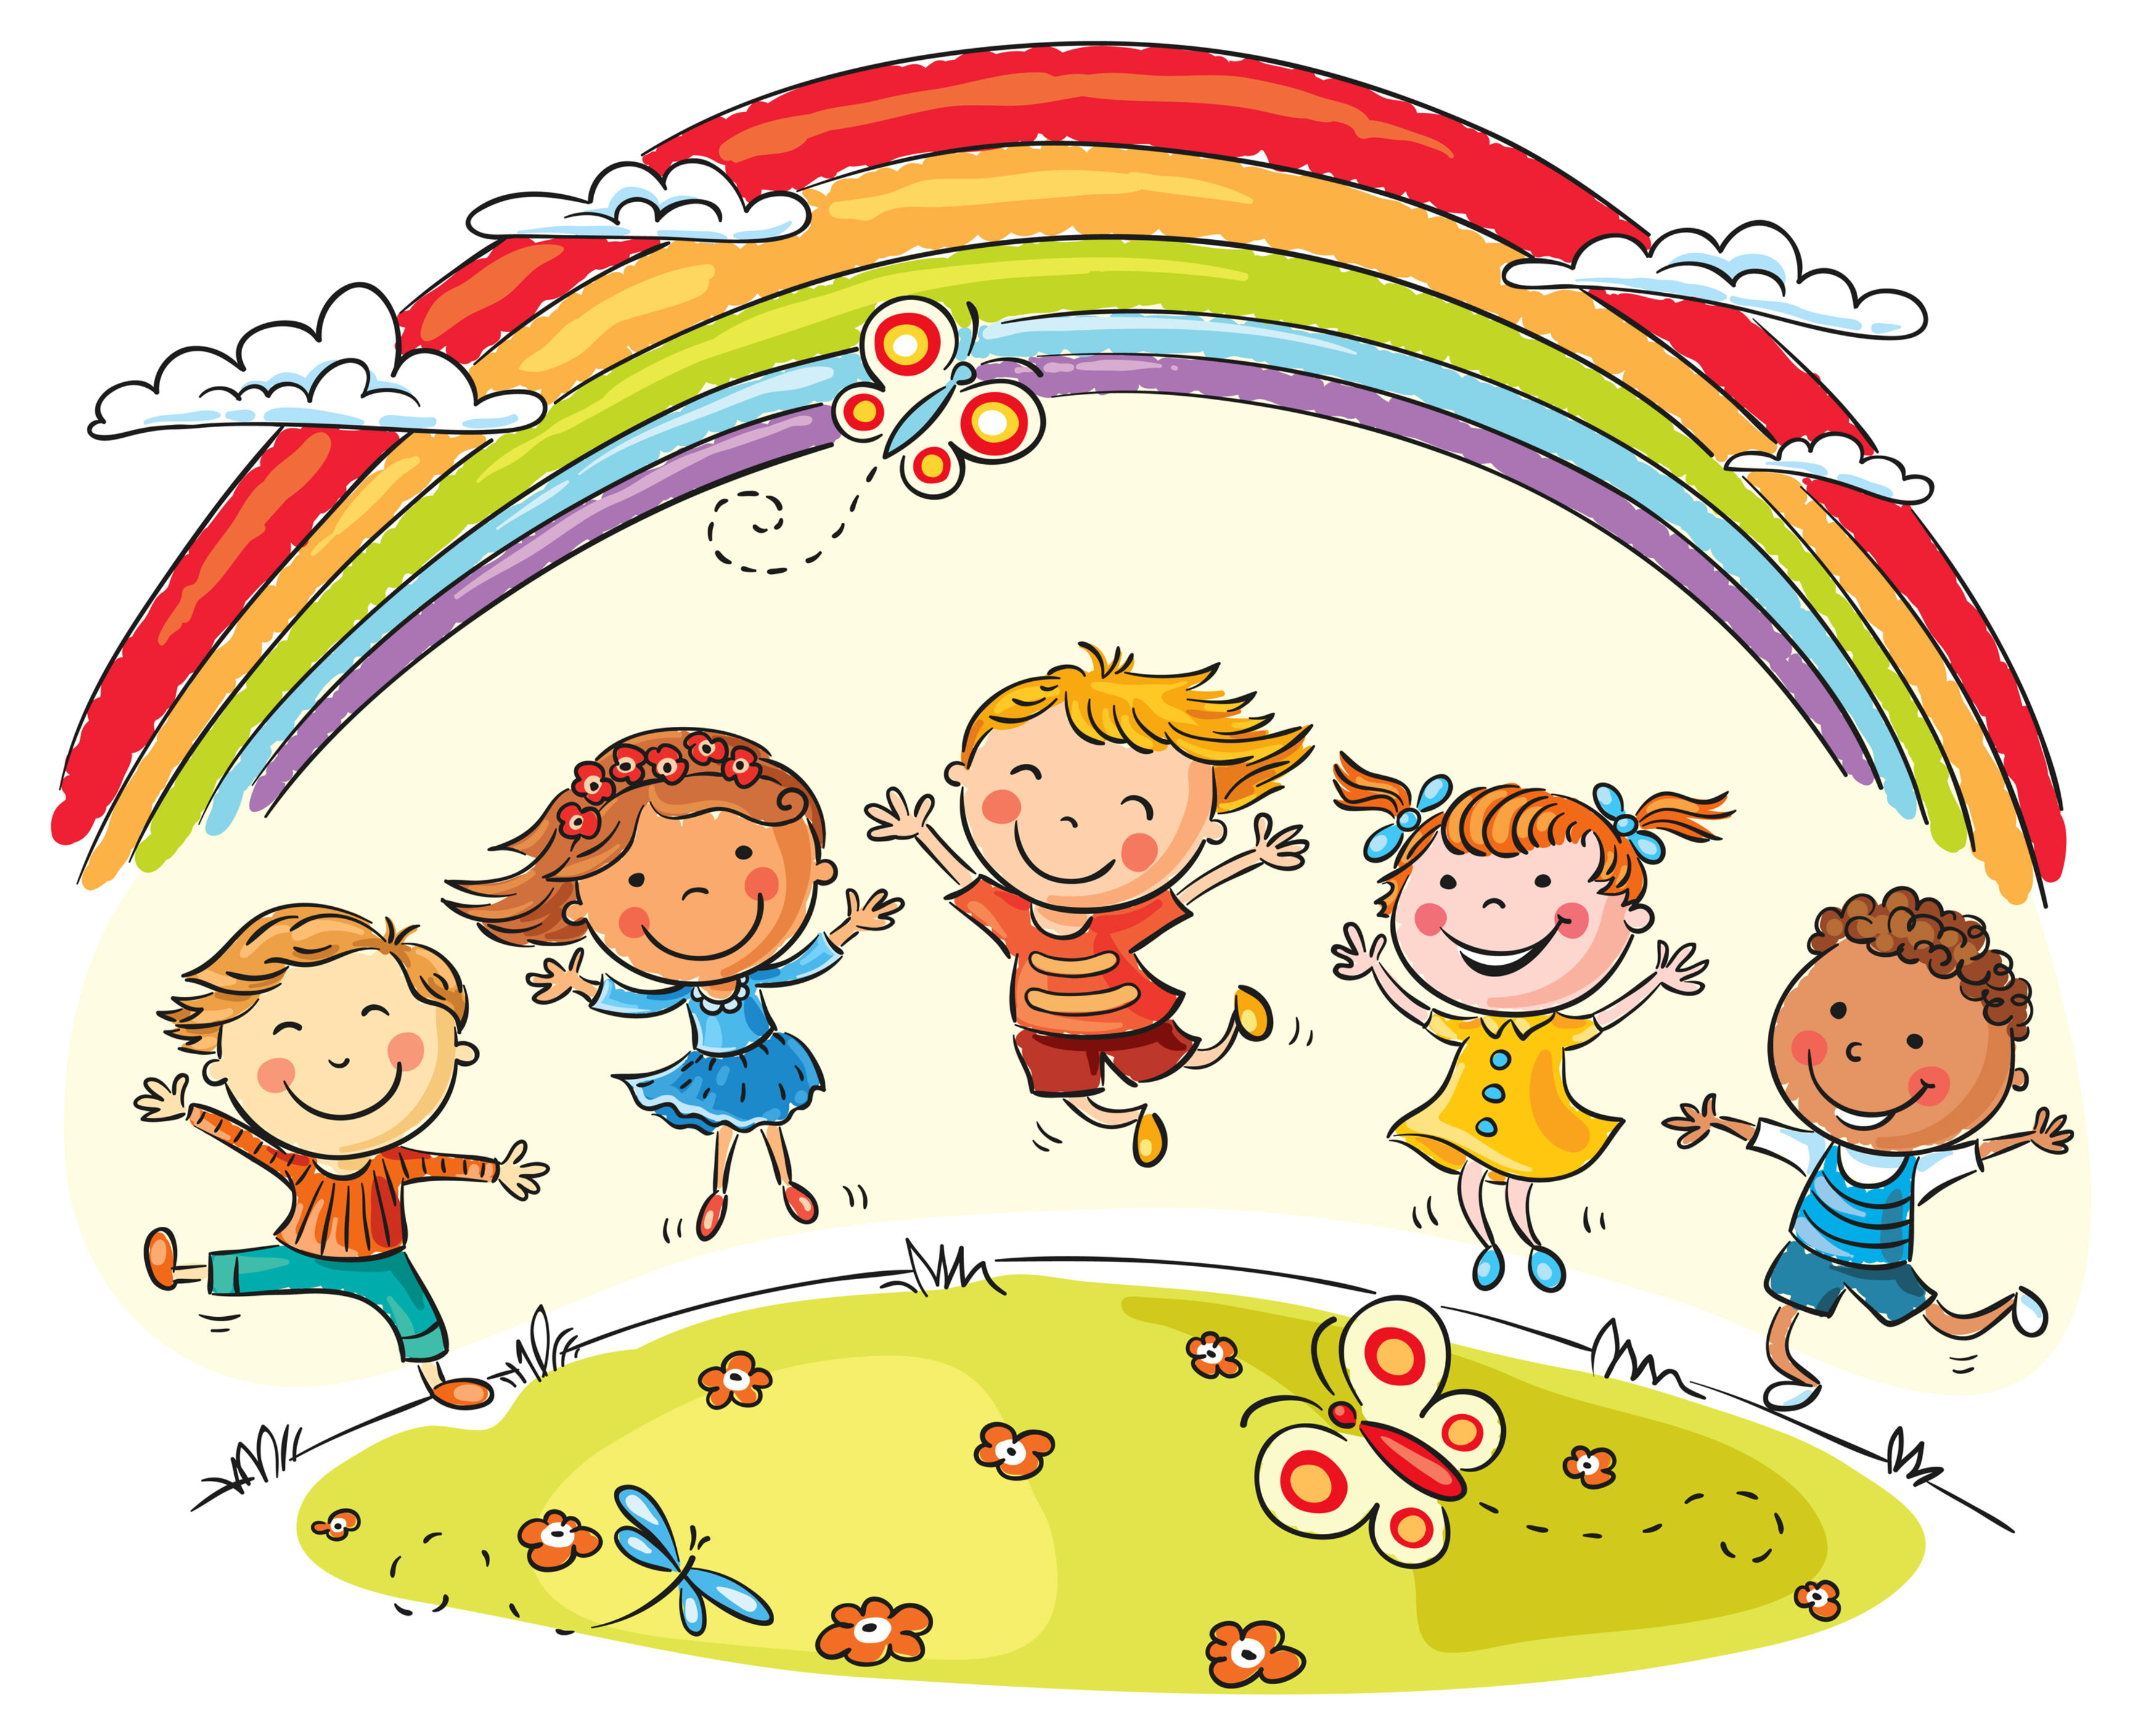 35233096 - kids jumping with joy on a hill under rainbow, colorful cartoon